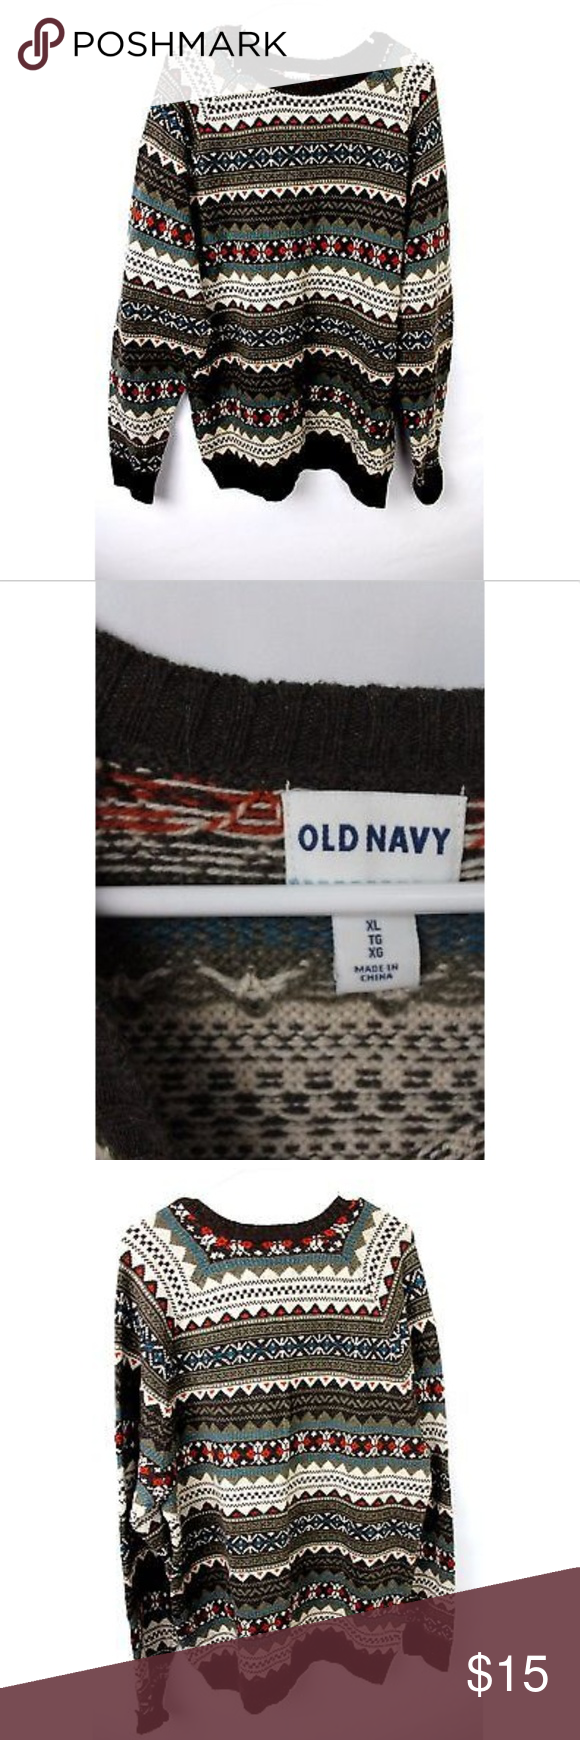 ⛈ Old Navy Men's Ugly Christmas Sweater